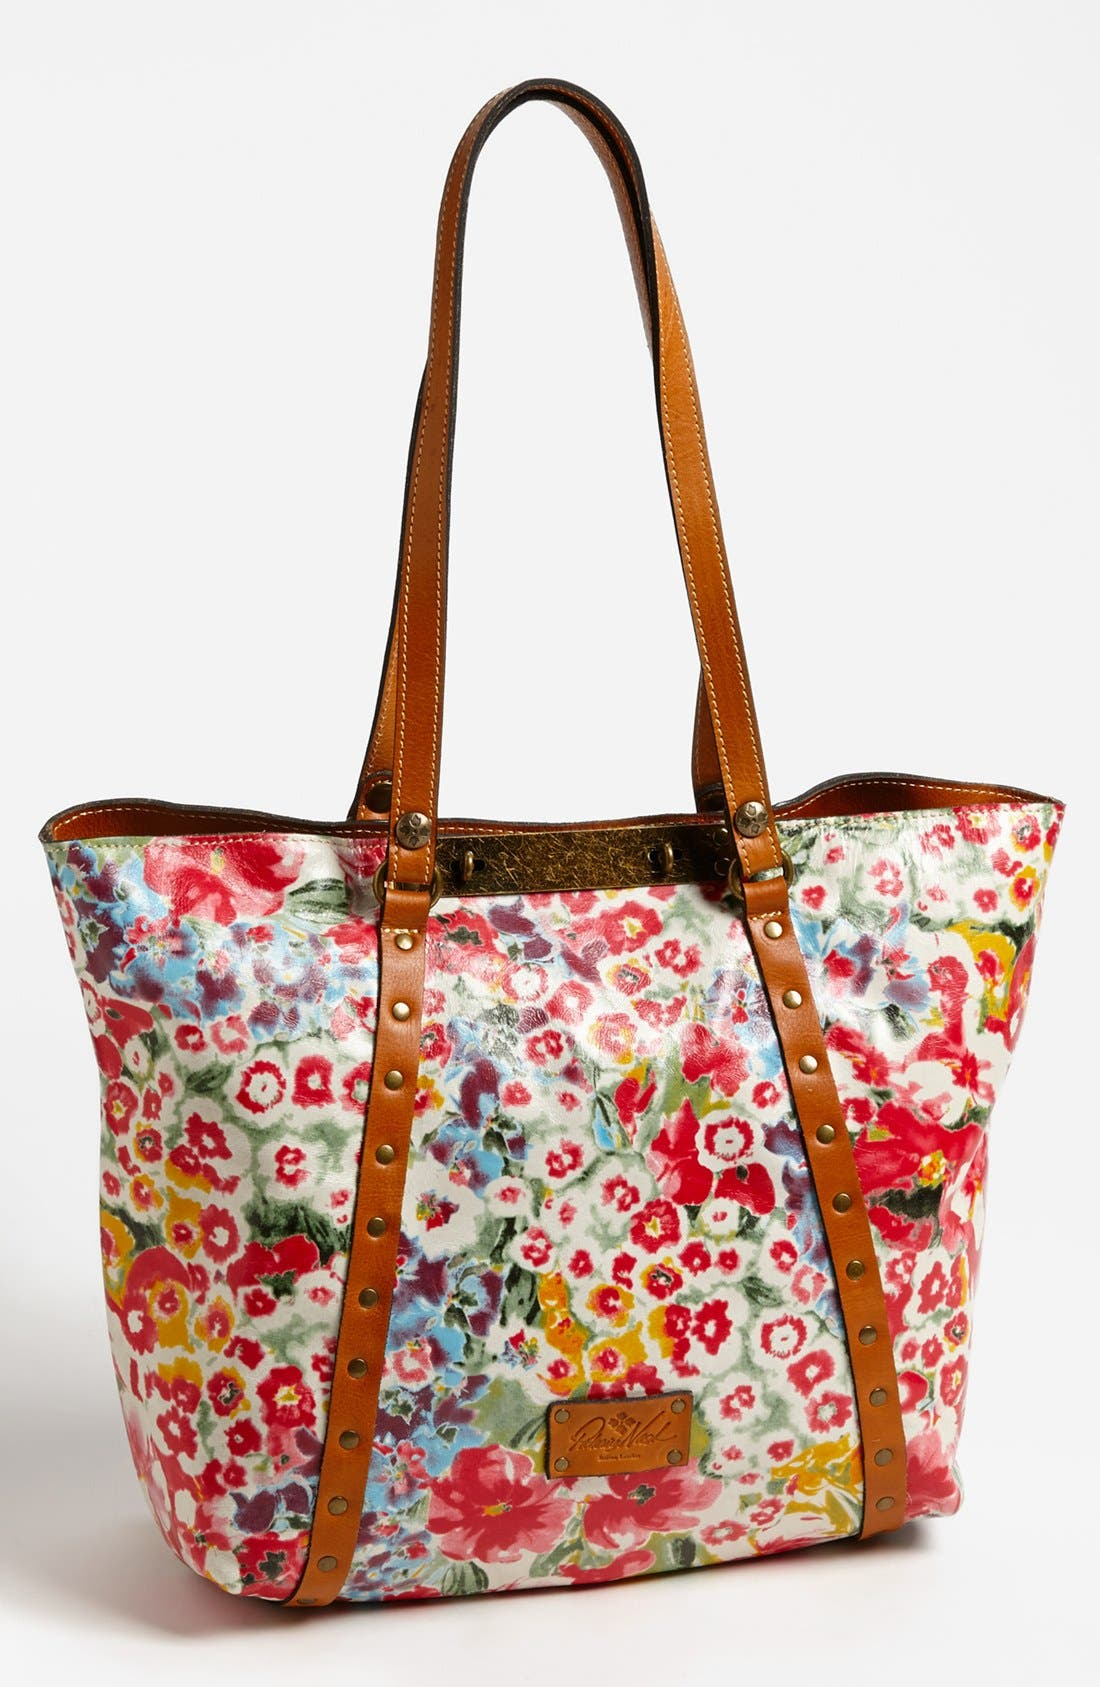 Alternate Image 1 Selected - Patricia Nash 'Benvenuto' Convertible Tote